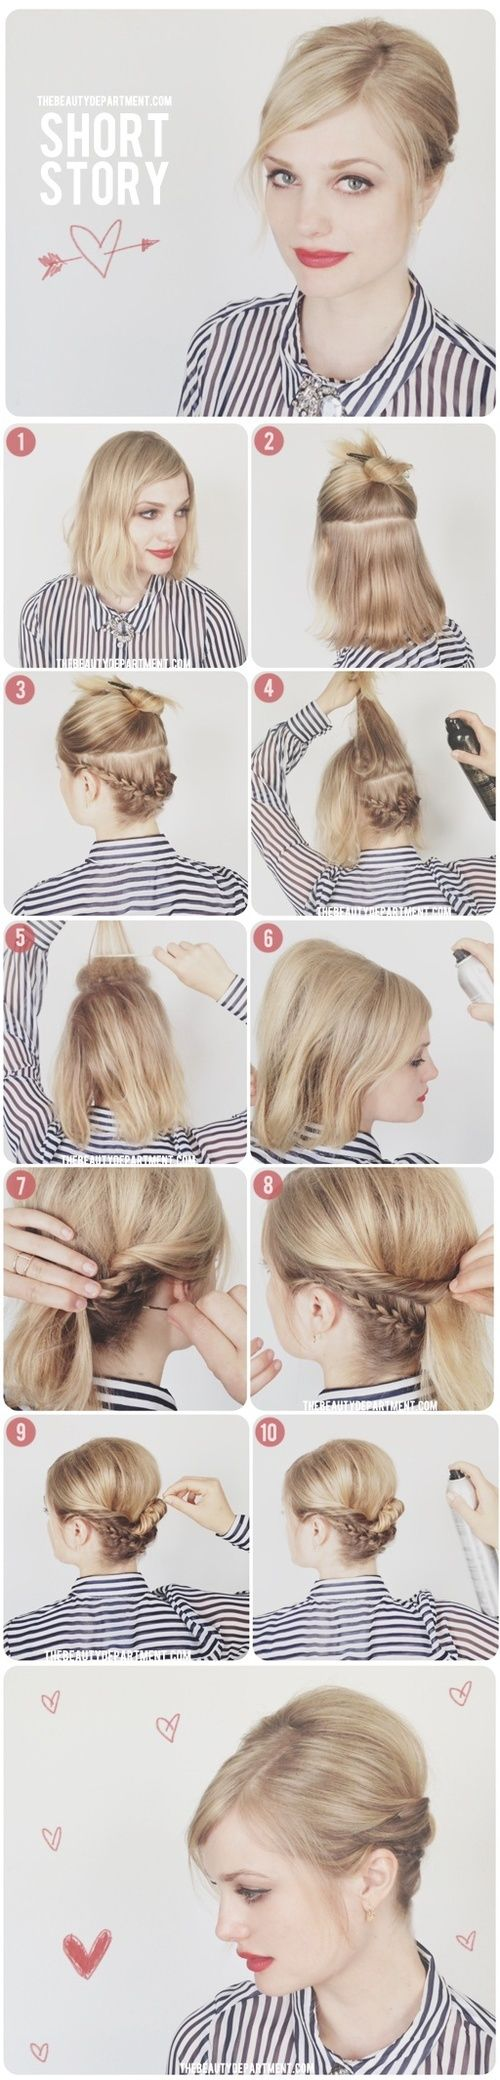 sassy hairstyle tutorials for short or medium hair medium hair